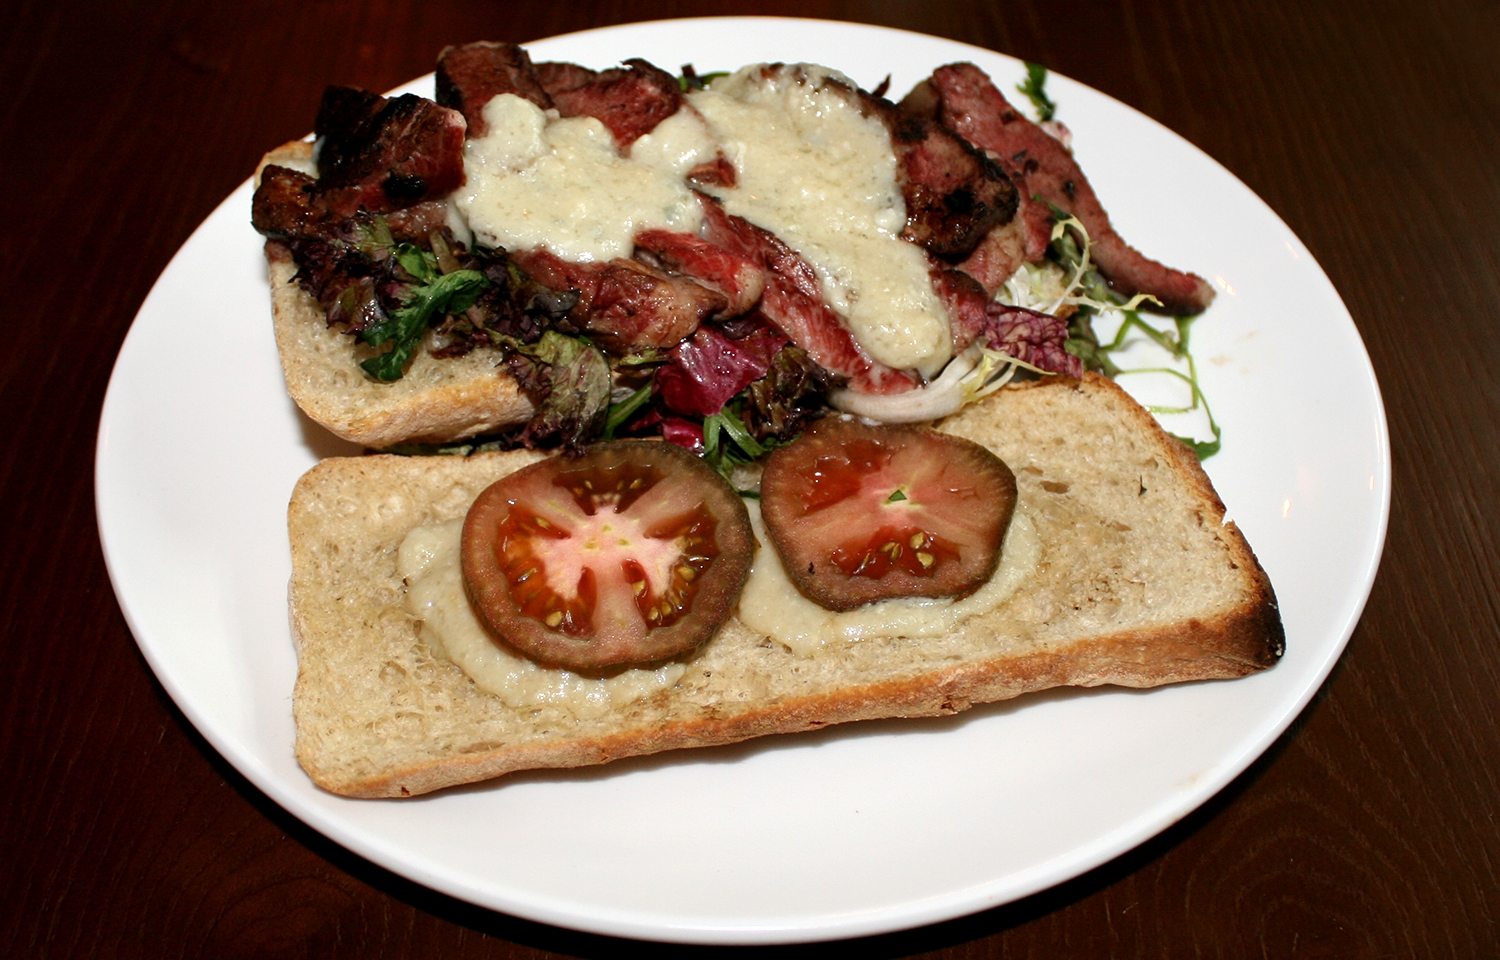 Ciabatta bread with smoked cheese, grilled beef and tomatoes